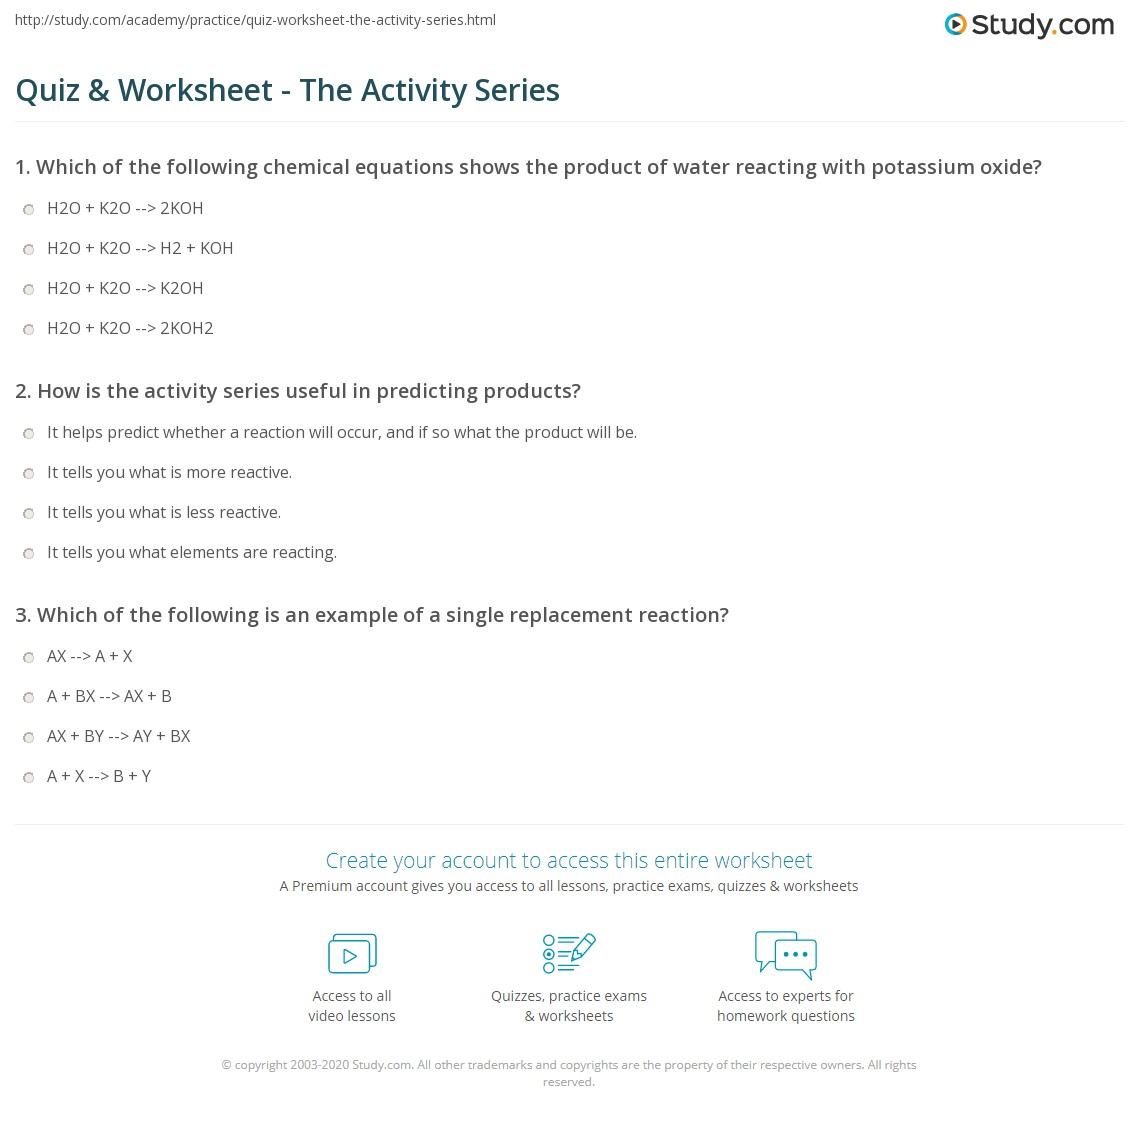 Aldiablosus  Picturesque Quiz Amp Worksheet  The Activity Series  Studycom With Excellent Print The Activity Series Predicting Products Of Single Displacement Reactions Worksheet With Agreeable How Can You Order A Ladder Worksheet Also Family Therapy Worksheets In Addition Free Math Worksheets For Rd Grade And Grief And Loss Worksheets As Well As Math Fluency Worksheets Additionally World Map Worksheet From Studycom With Aldiablosus  Excellent Quiz Amp Worksheet  The Activity Series  Studycom With Agreeable Print The Activity Series Predicting Products Of Single Displacement Reactions Worksheet And Picturesque How Can You Order A Ladder Worksheet Also Family Therapy Worksheets In Addition Free Math Worksheets For Rd Grade From Studycom